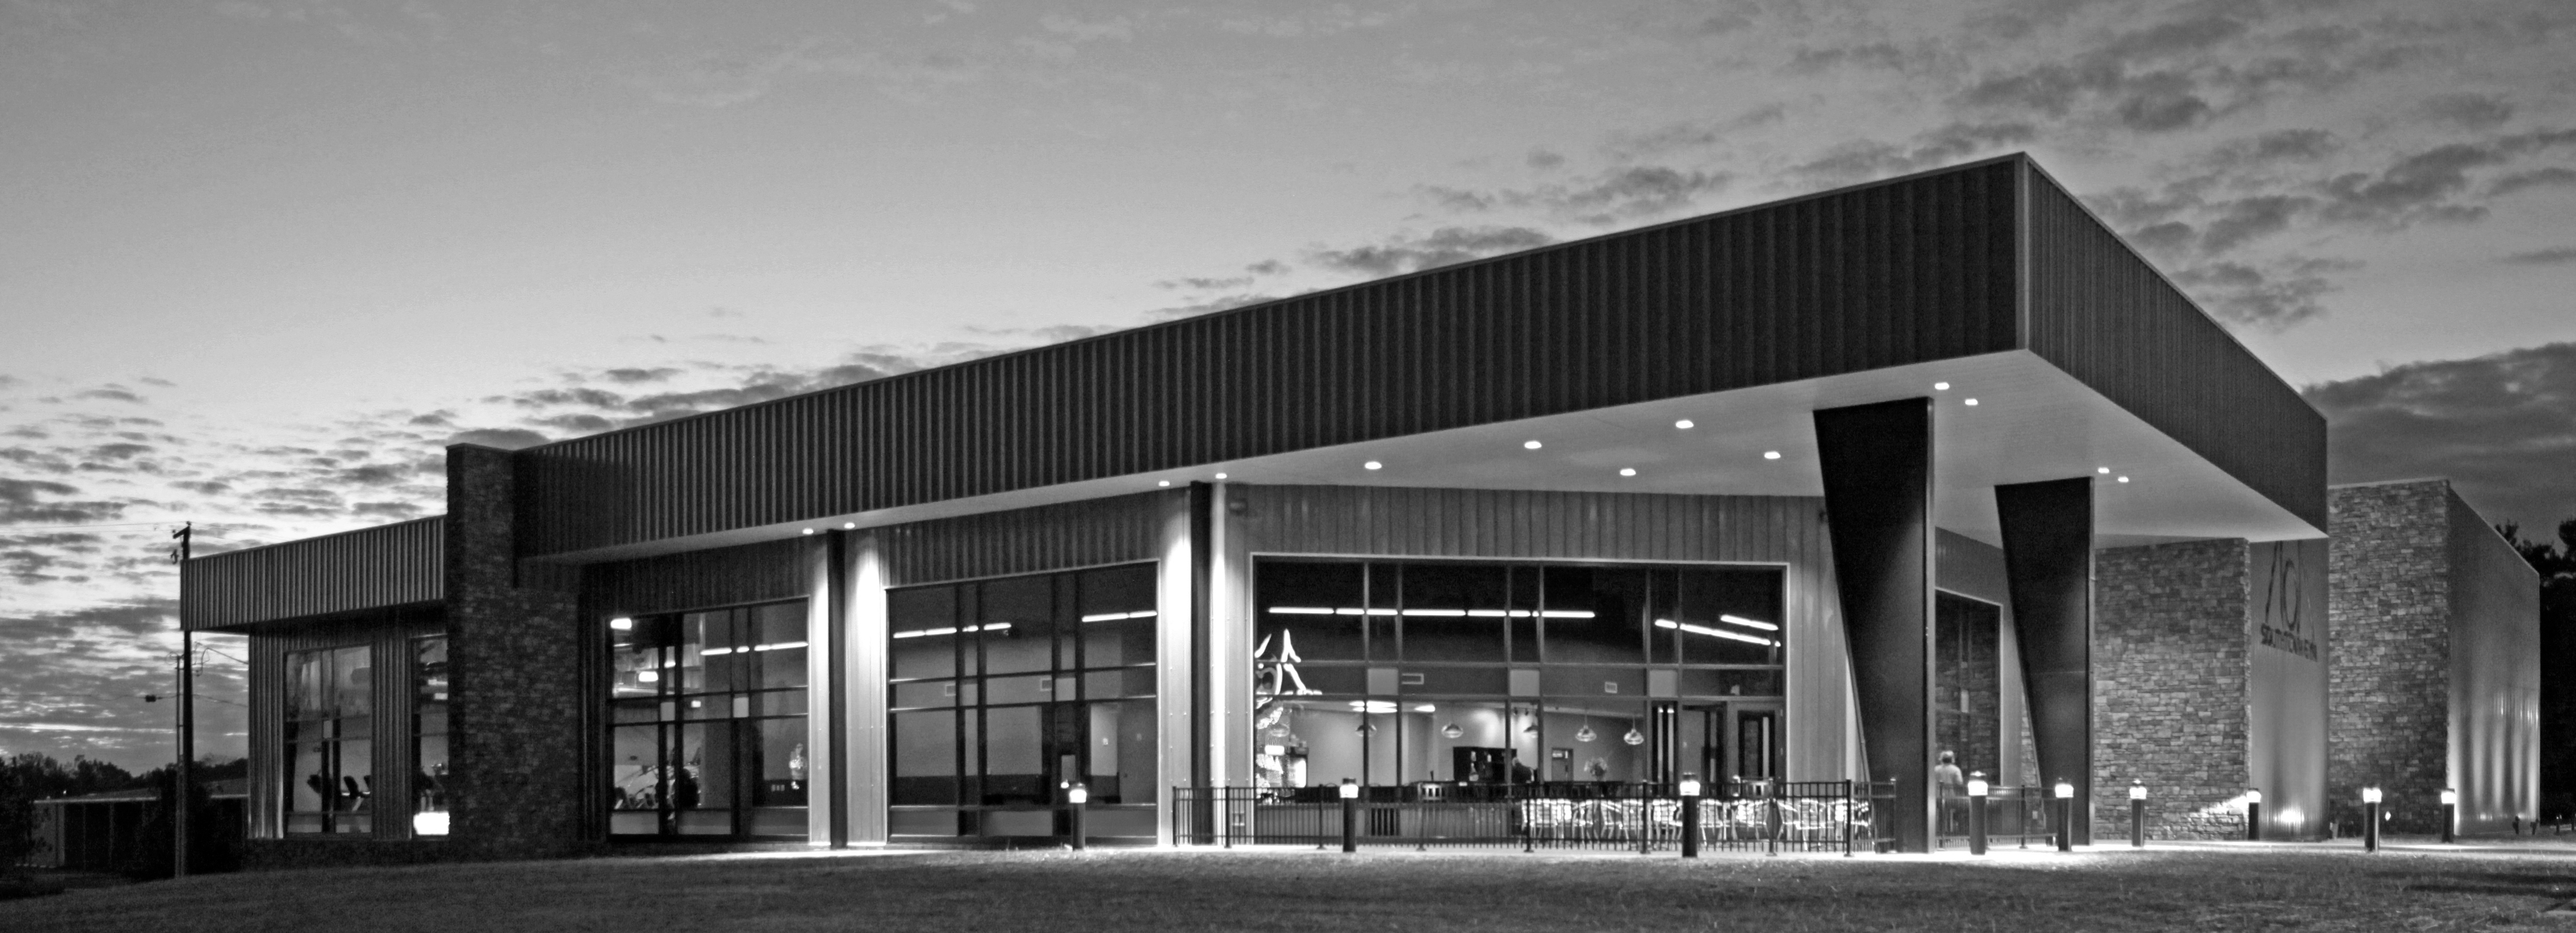 southtown-gym-zanesville-ohio-archtectural-apg-architects-fitness-center-steel-building-modern-industrial